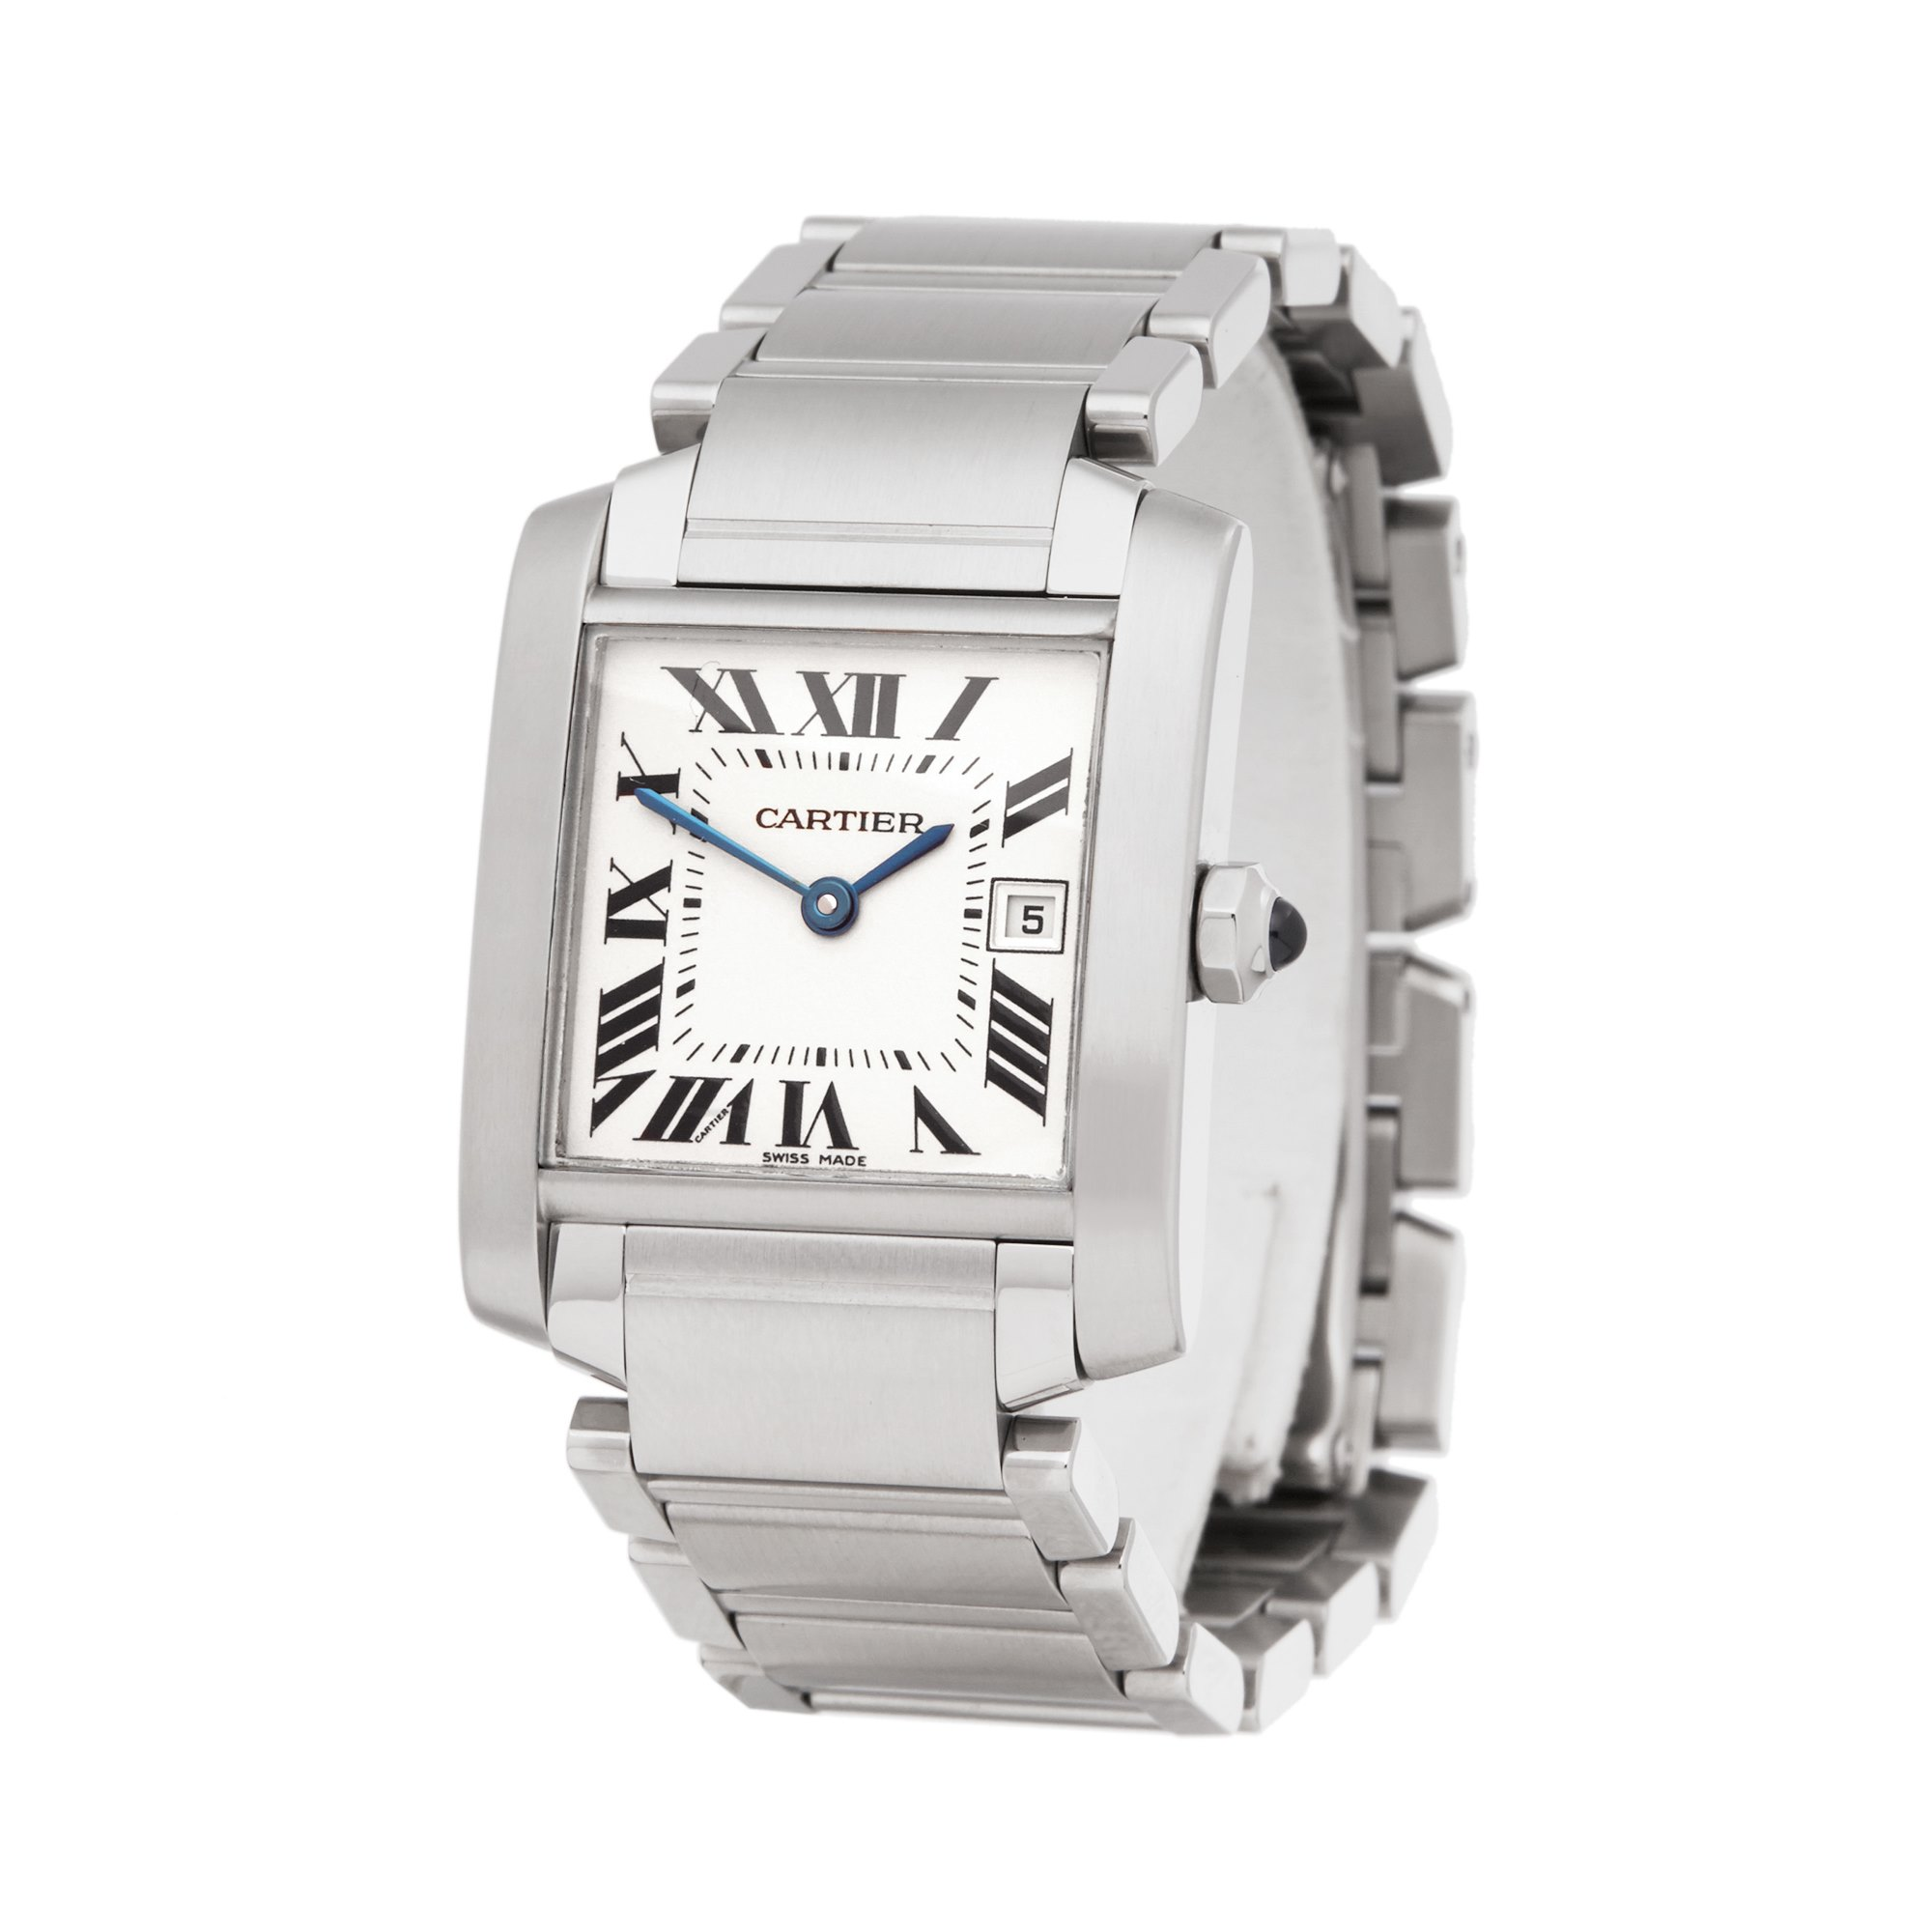 Cartier Tank Francaise Roestvrij Staal W51011Q3 or 2465